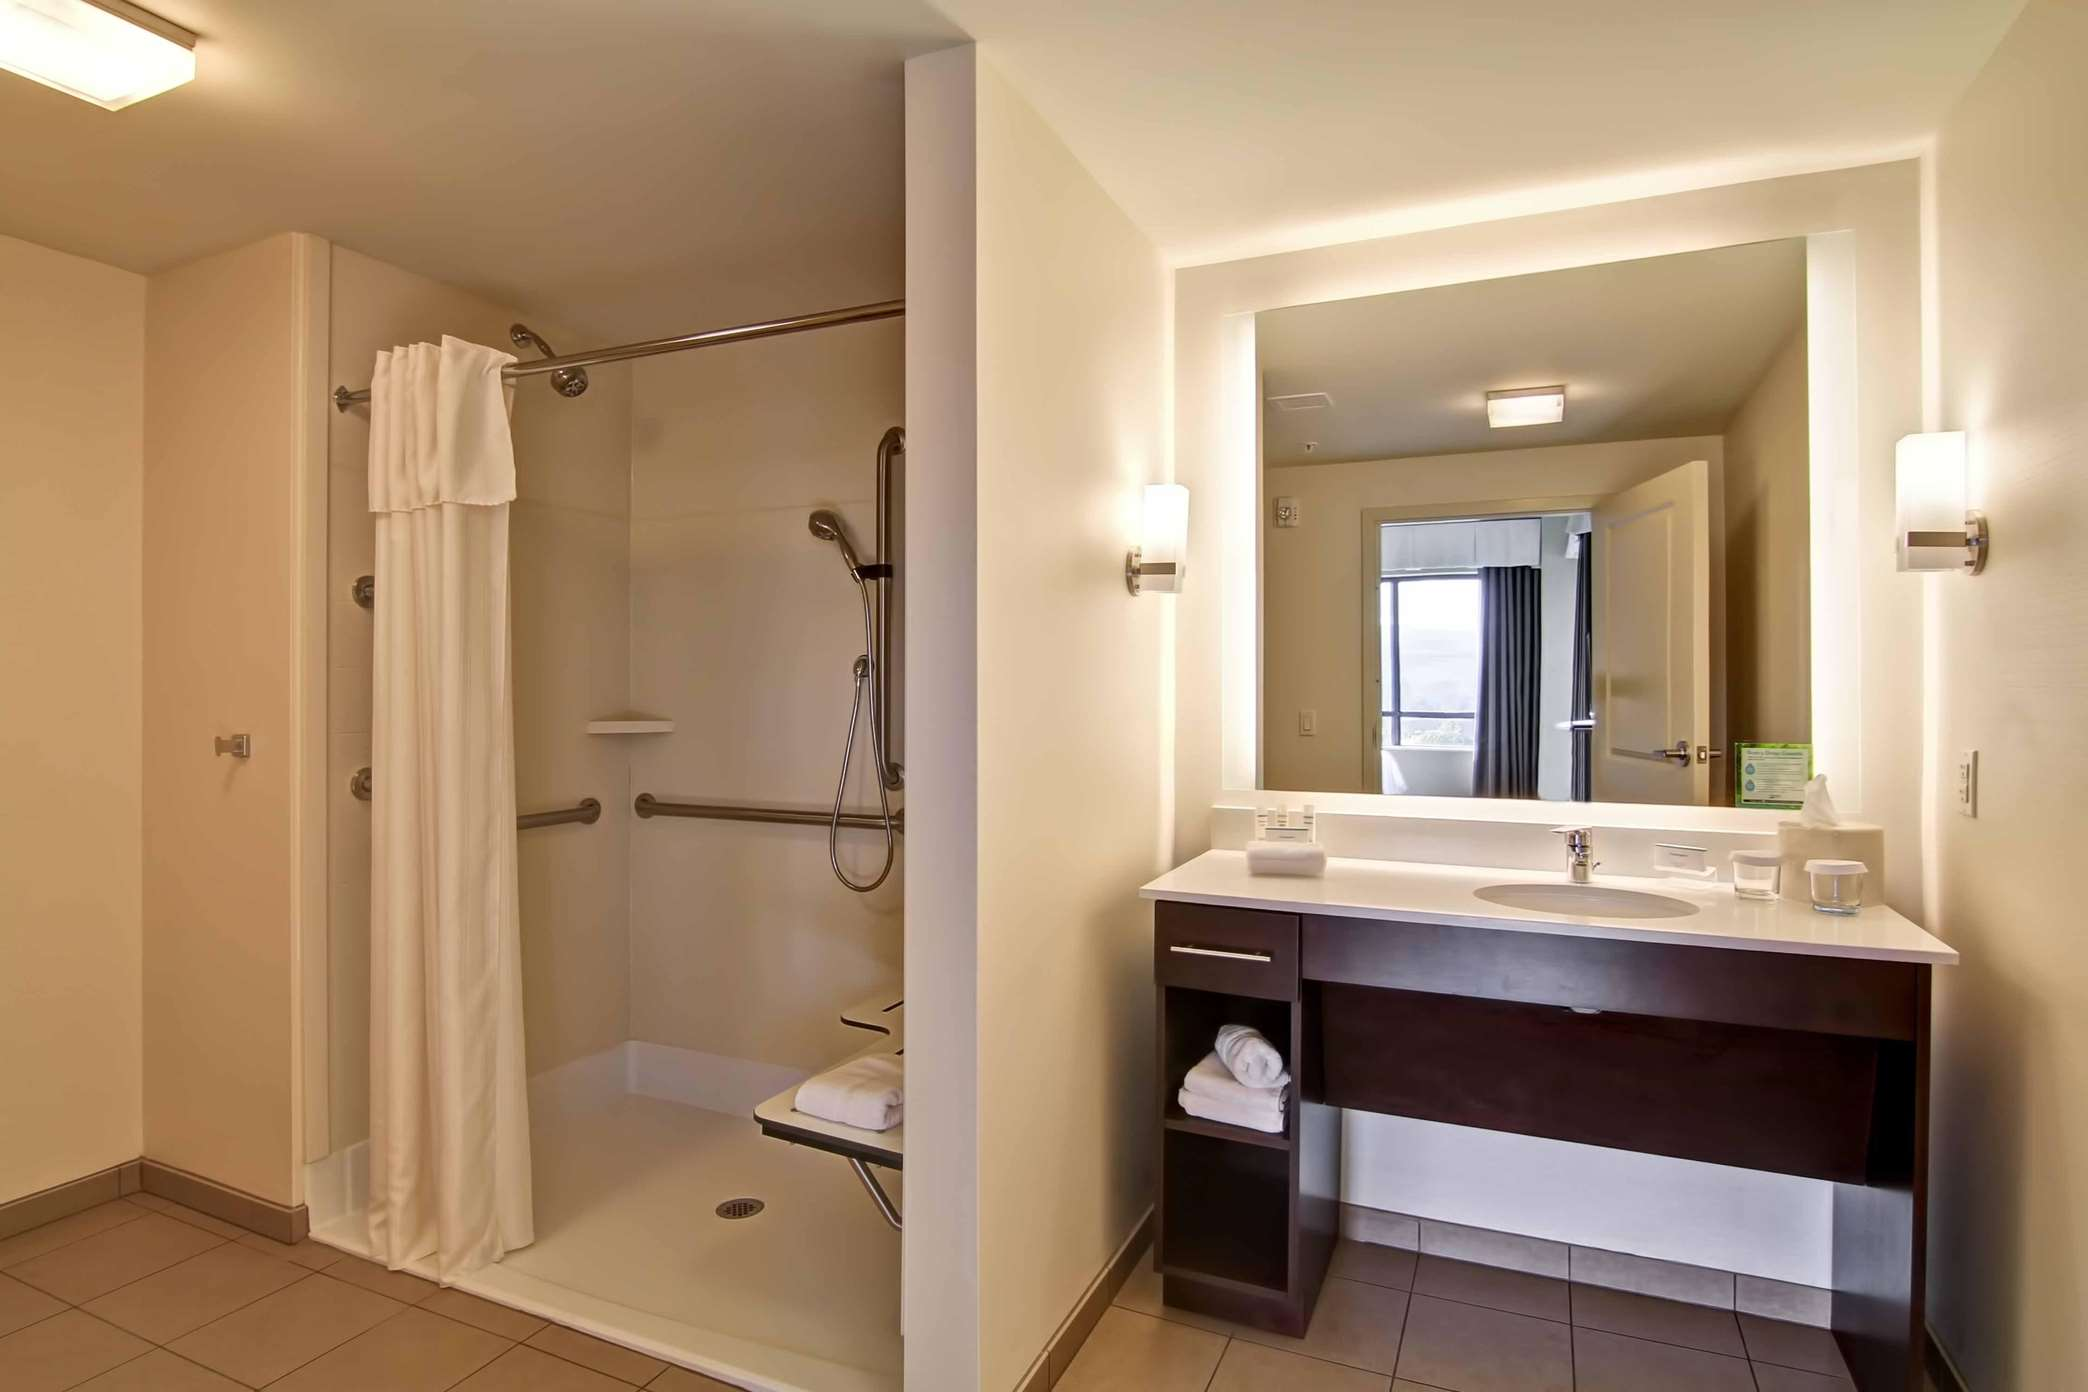 Homewood Suites by Hilton Seattle-Issaquah image 22